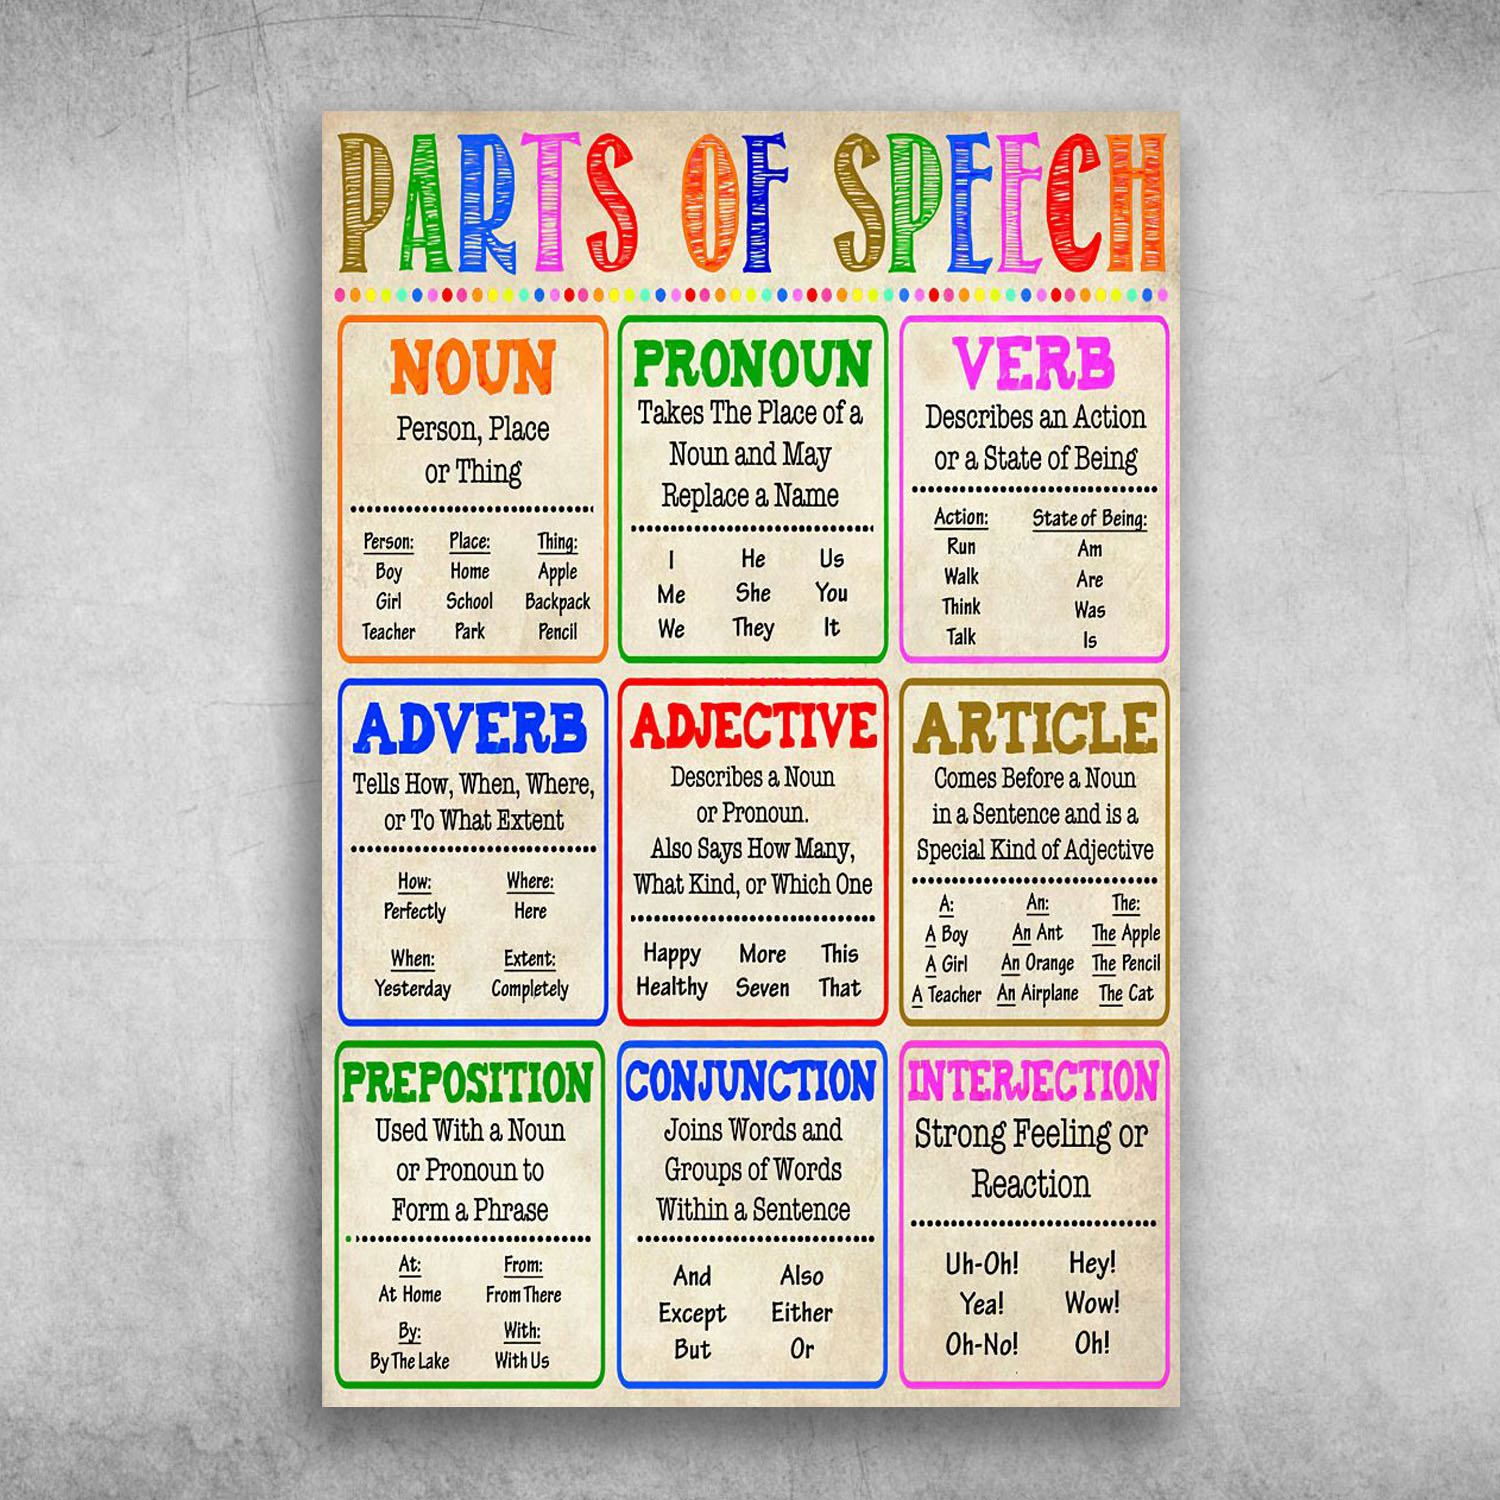 Parts Of Speech Noun Pronoun Verb Adverb Adjective